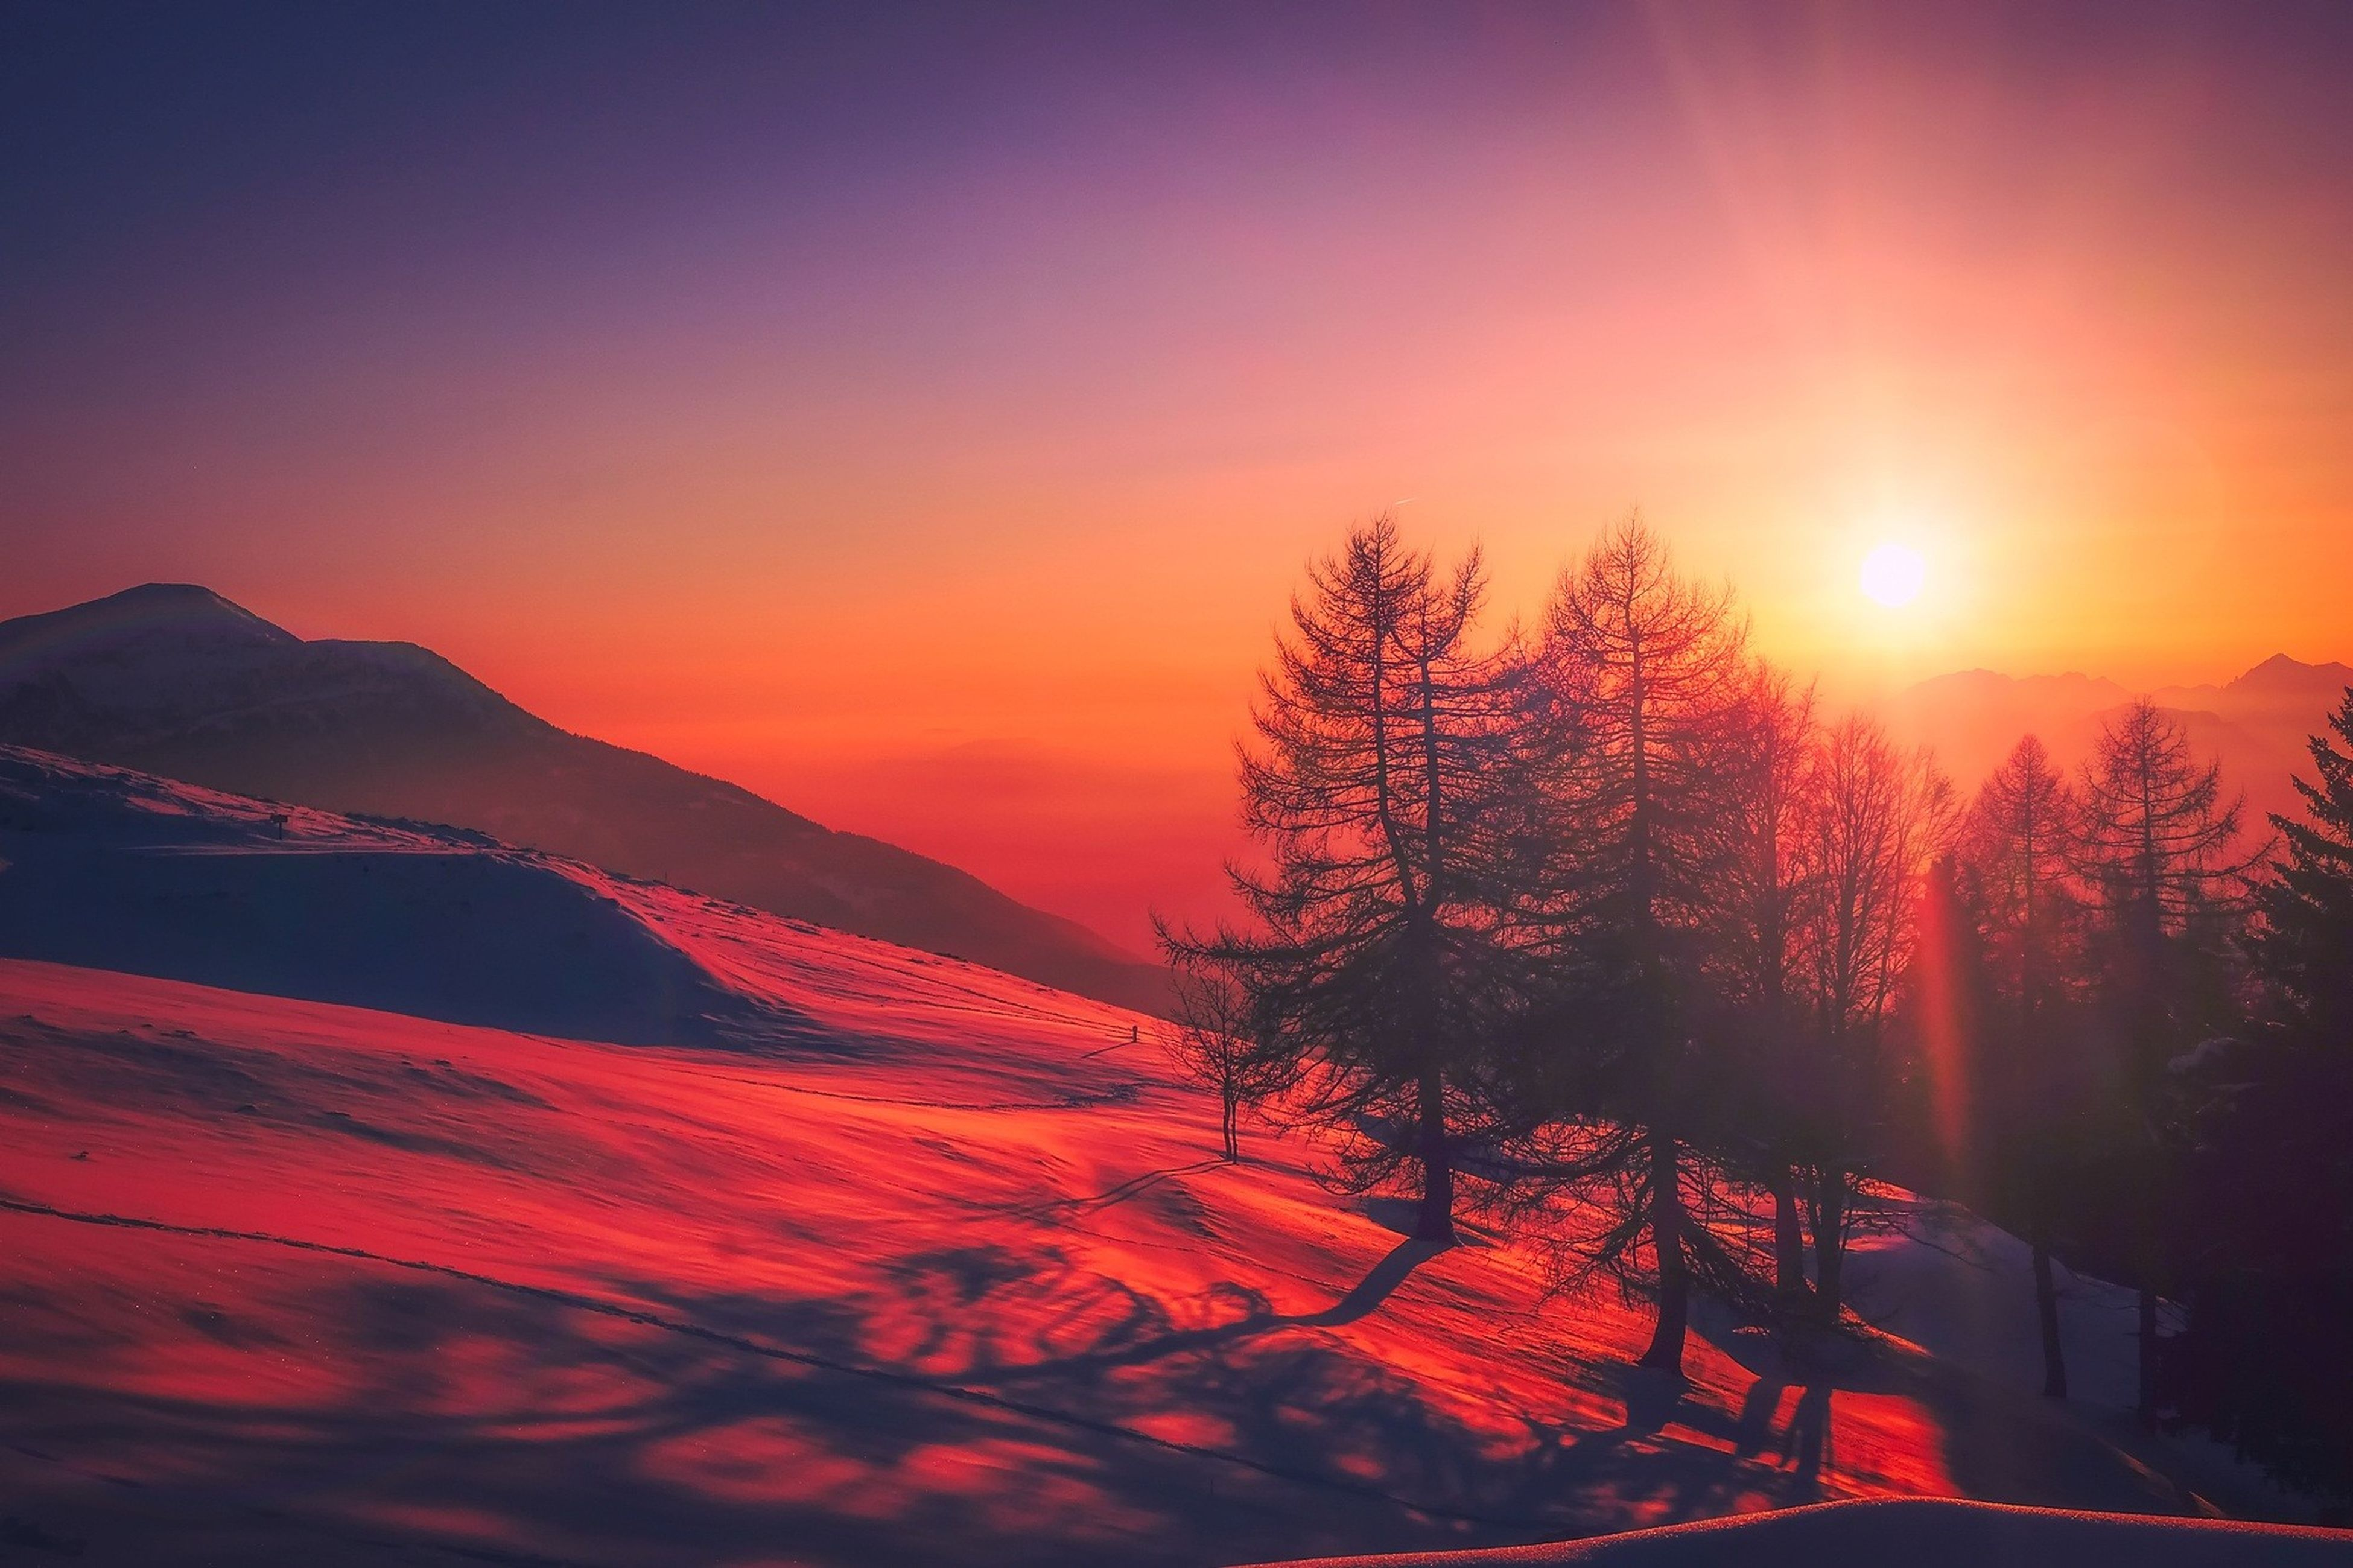 snow, winter, cold temperature, sunset, beauty in nature, nature, sun, tranquility, scenics, tranquil scene, sunlight, outdoors, landscape, no people, mountain, tree, sky, day